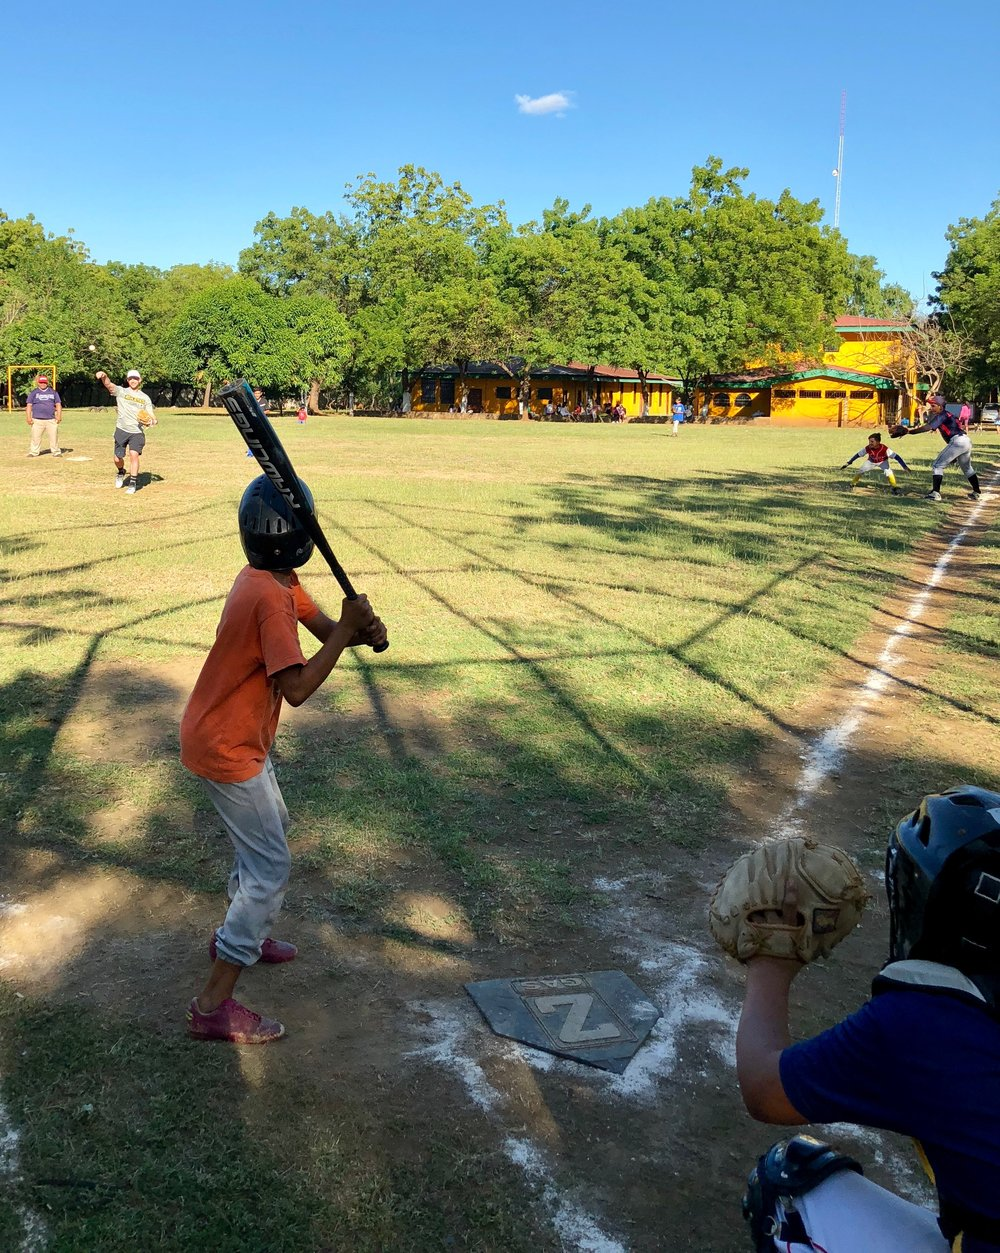 Lowrie pitches during a friendly game with kids in Managua. Photo by Milessa Lowrie.